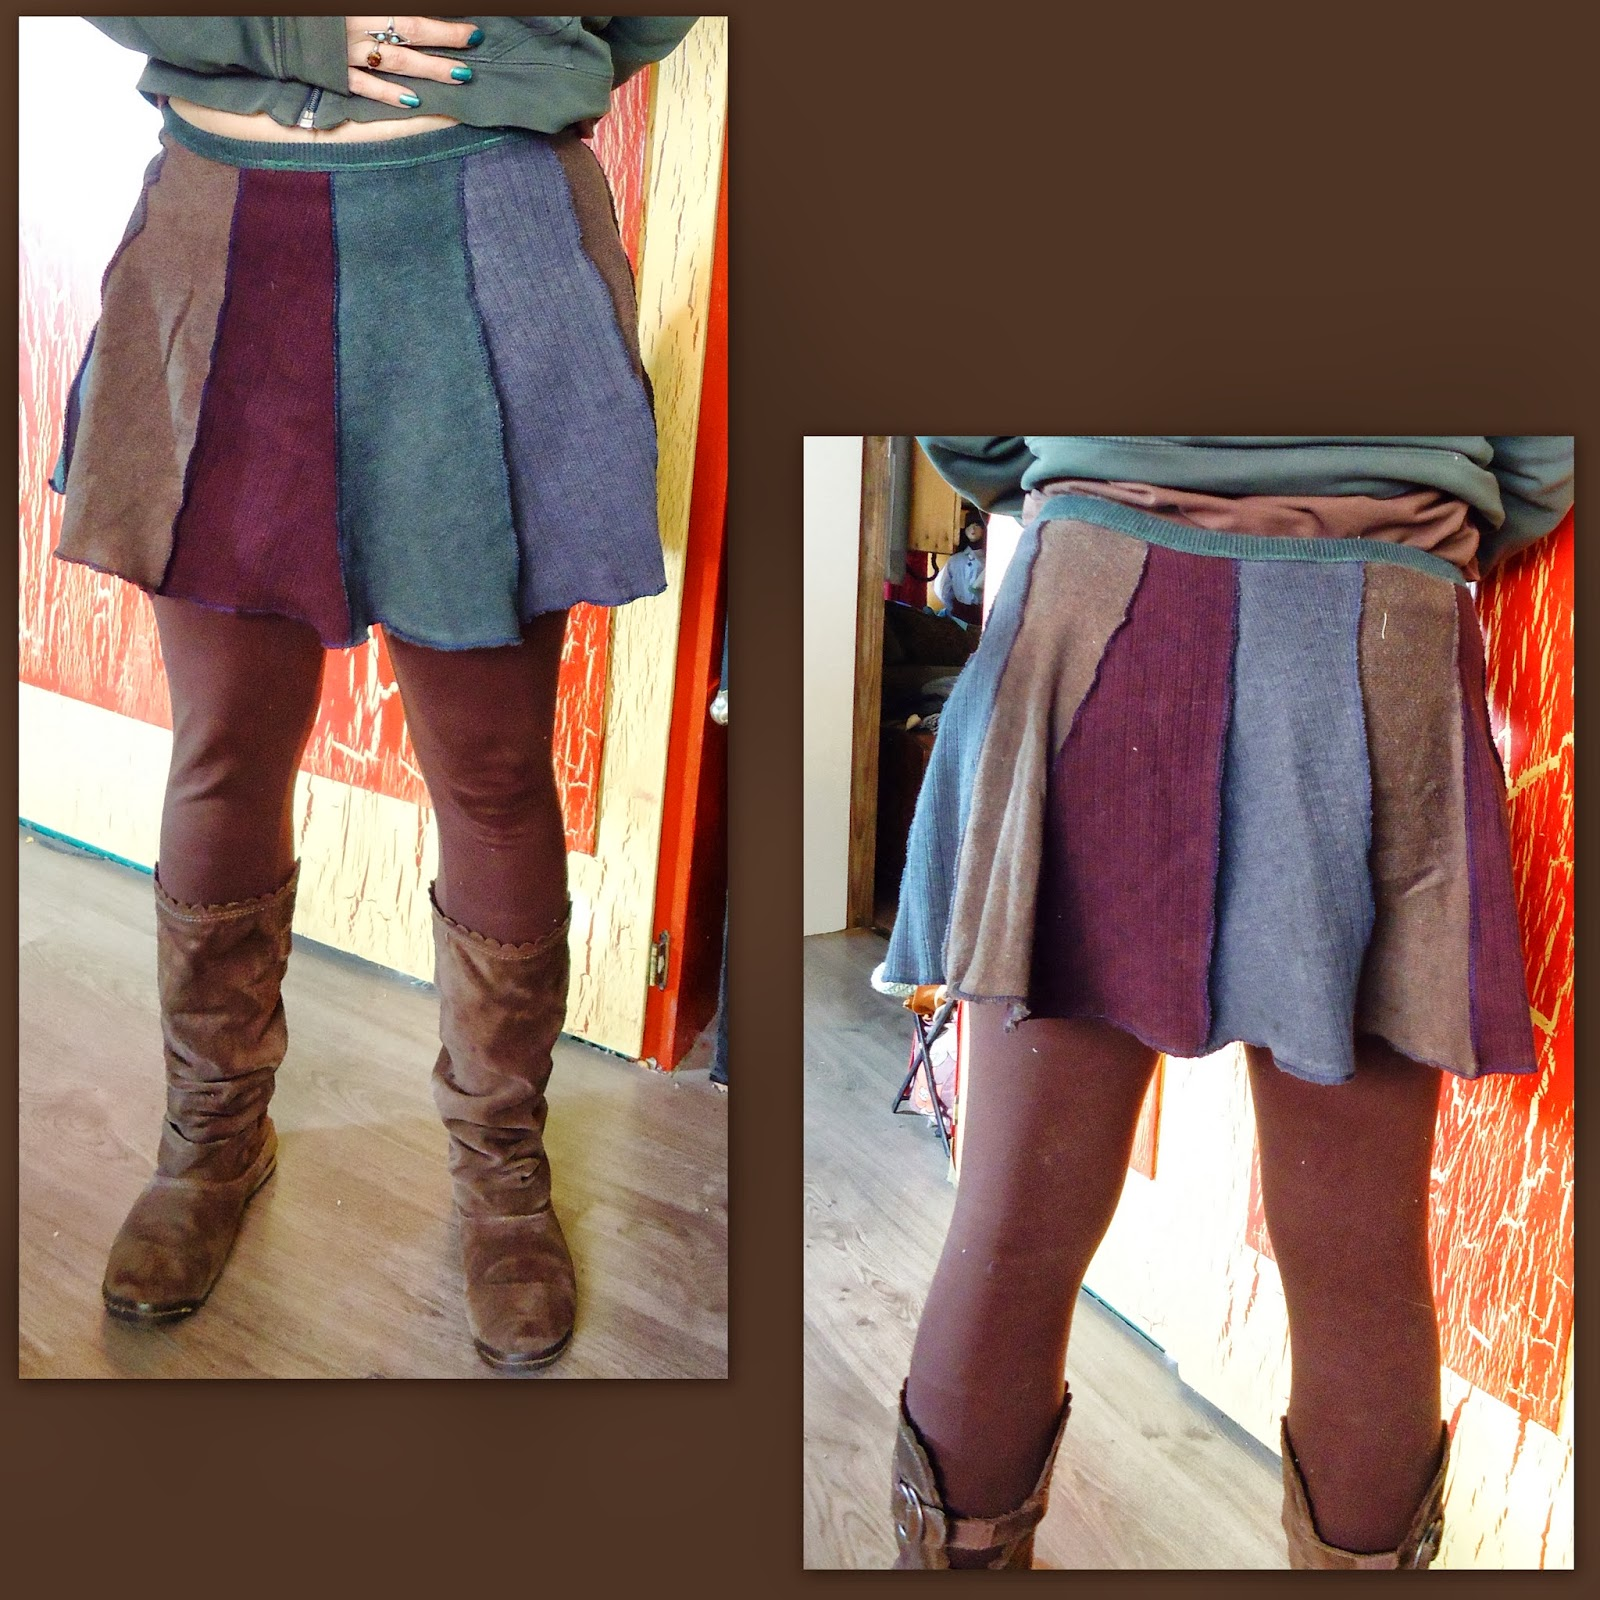 Recycled Miracles: Sweater skirt - katwise inspired